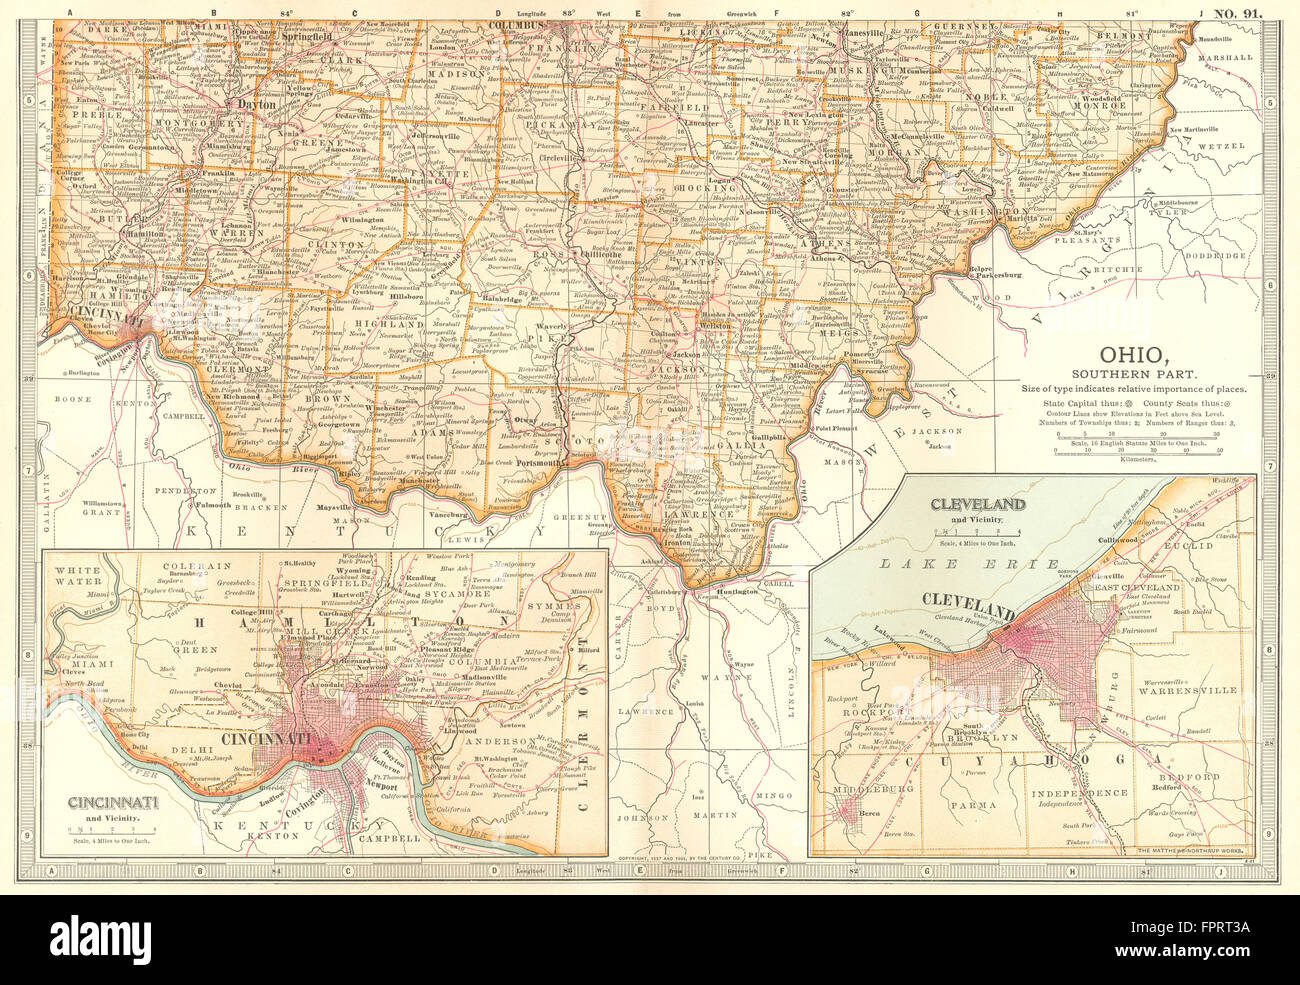 OHIO SOUTH: State map showing counties. Inset Cincinnati & Cleveland on